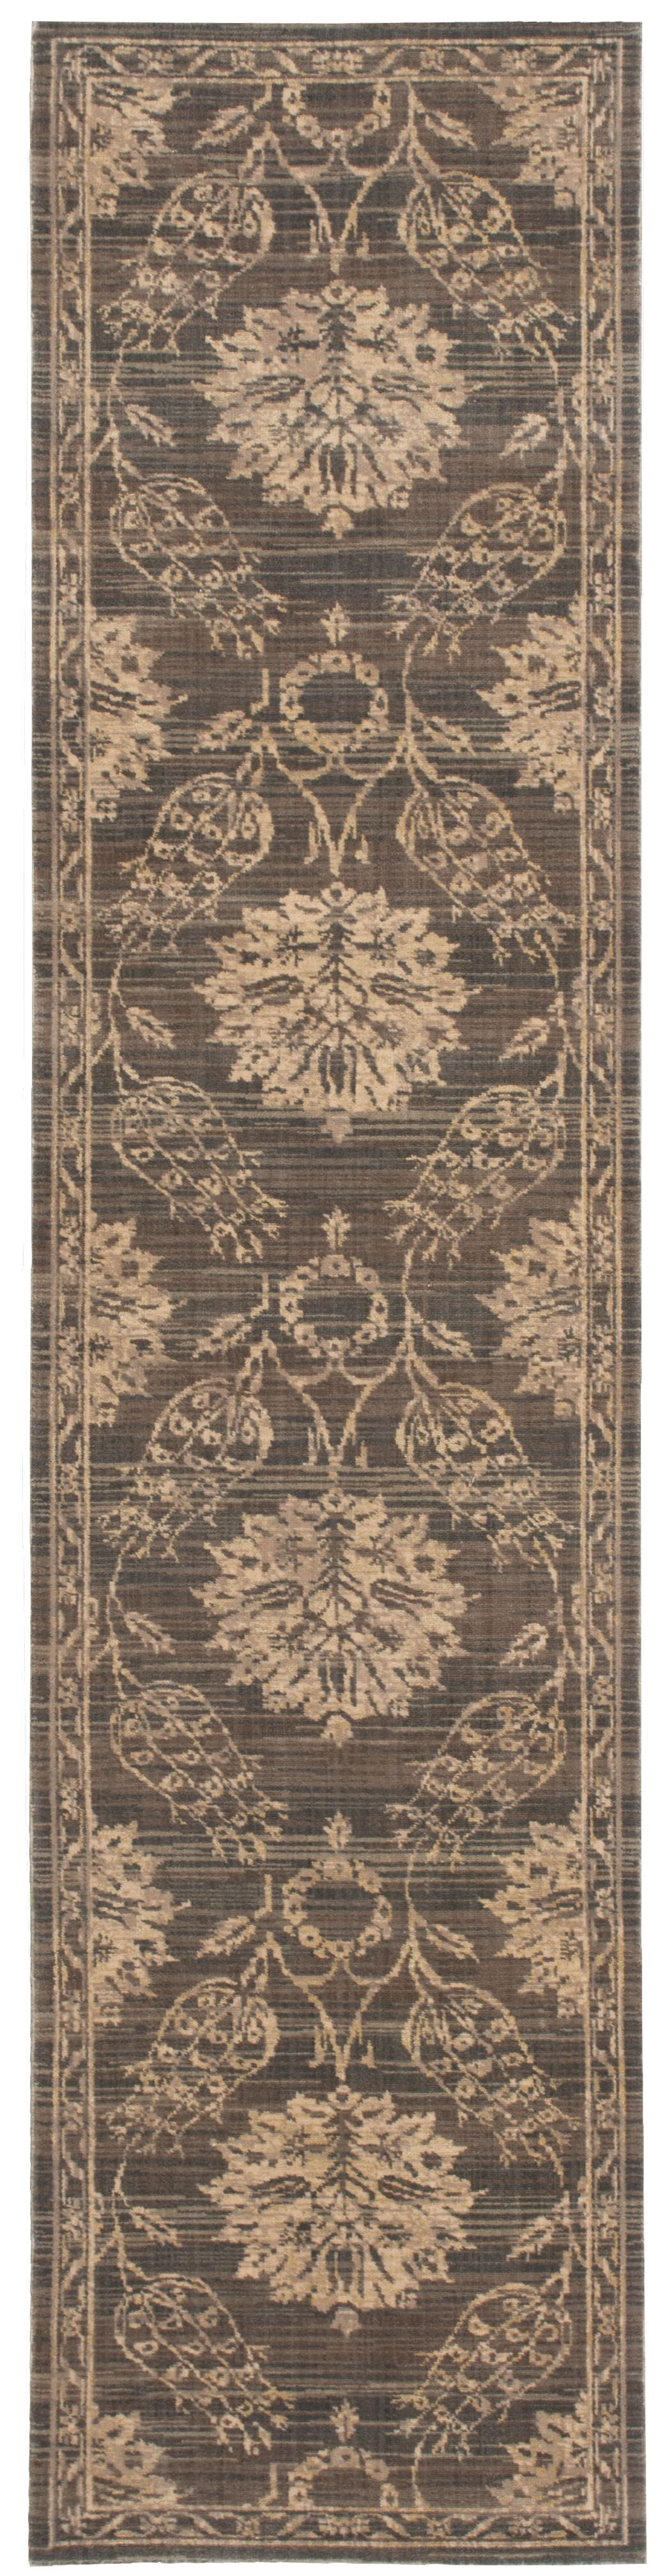 Eidelweiss Graphite Ornamental Leaf and Floral Area Rug Rug Size: Runner 2'5